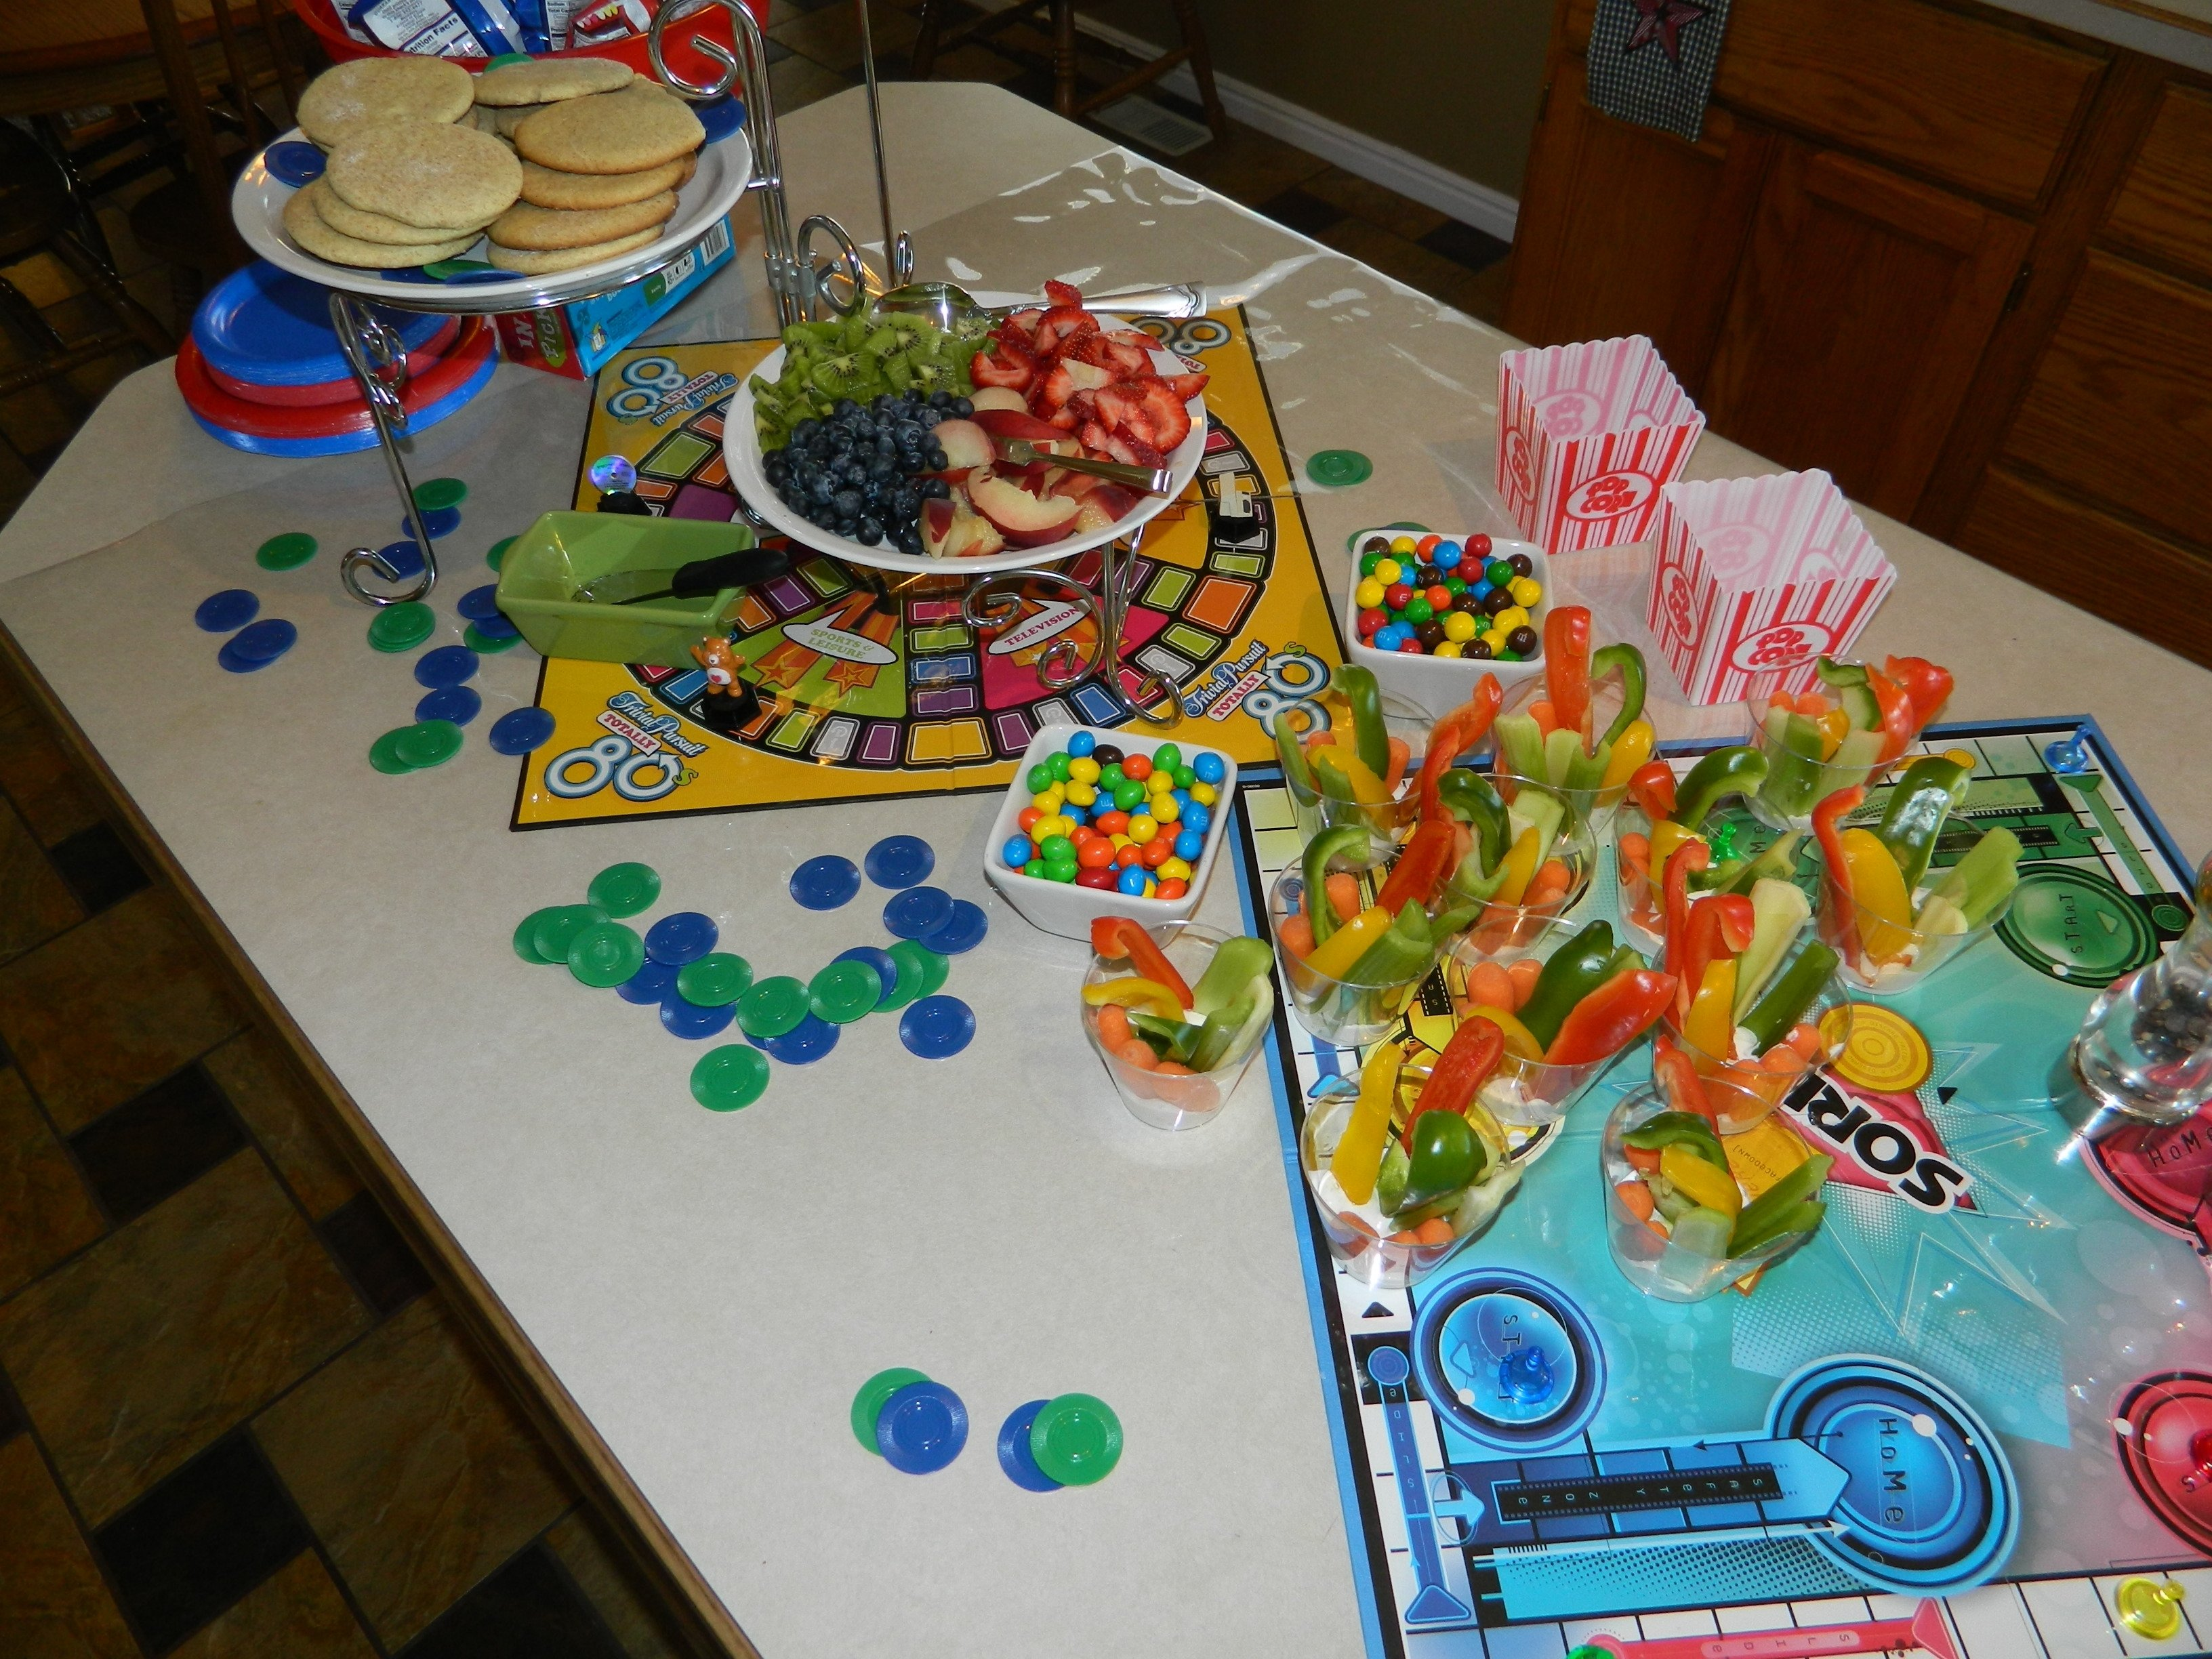 10 Attractive Ideas For A Board Game creative designs board game birthday party ideas themed oh what fun